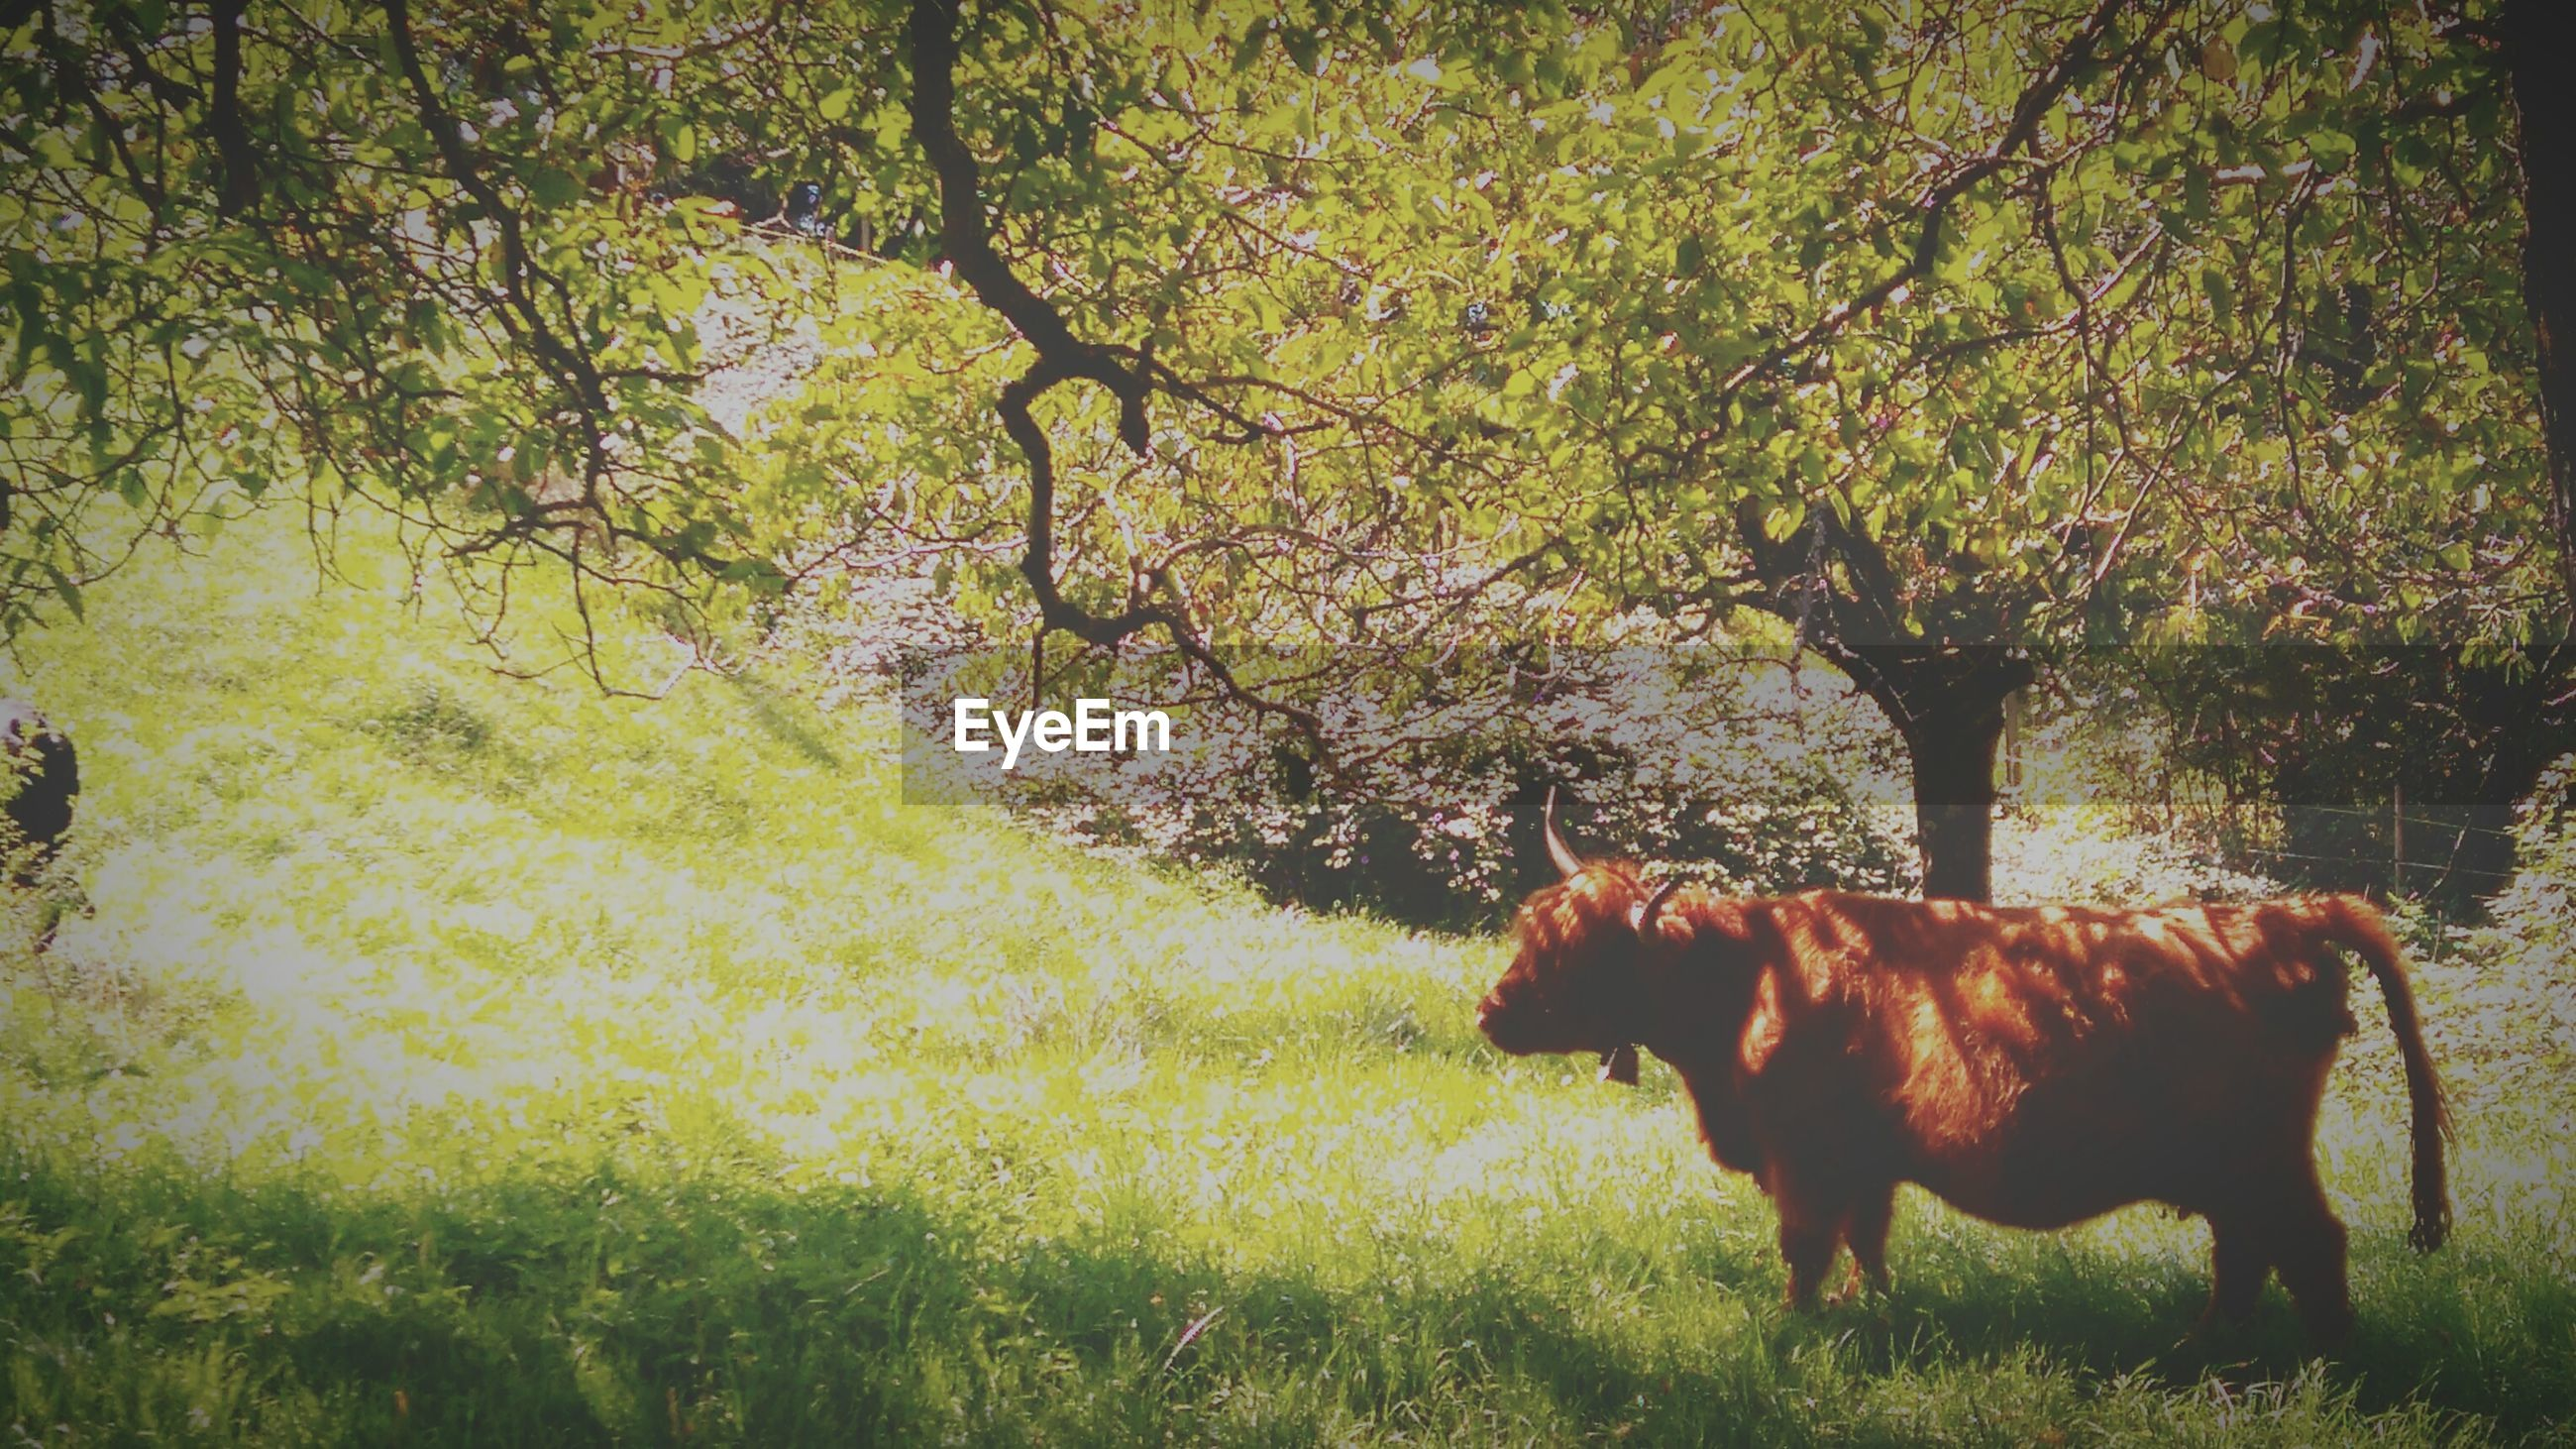 Cow standing on grassy field against trees